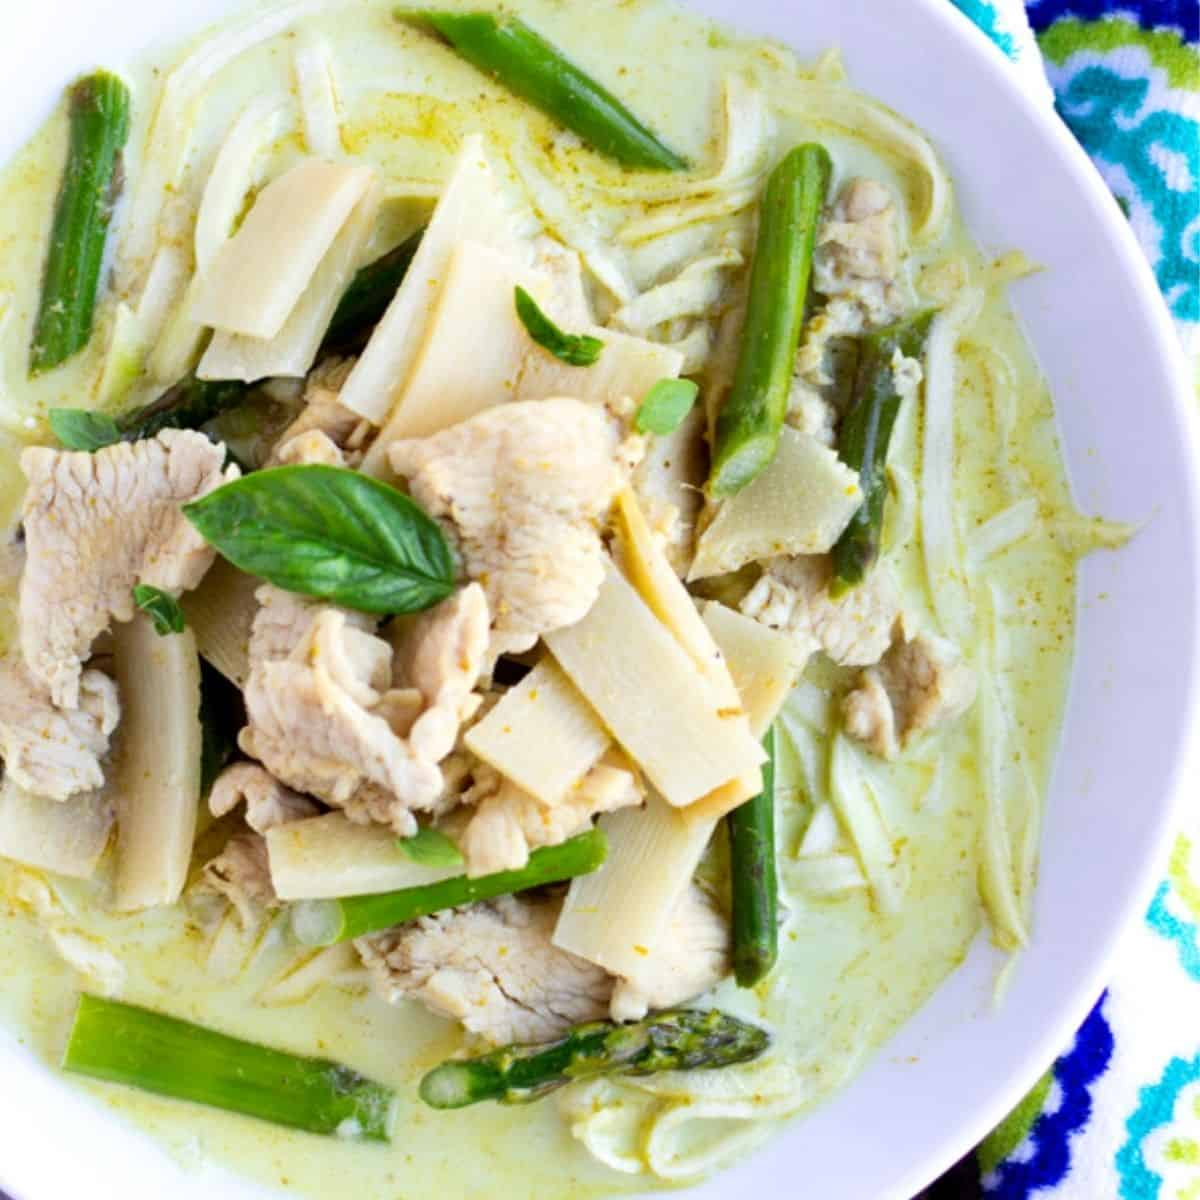 Feature image of green curry in a white bowl with chicken, bamboo, asparagus, and zucchini noodles.